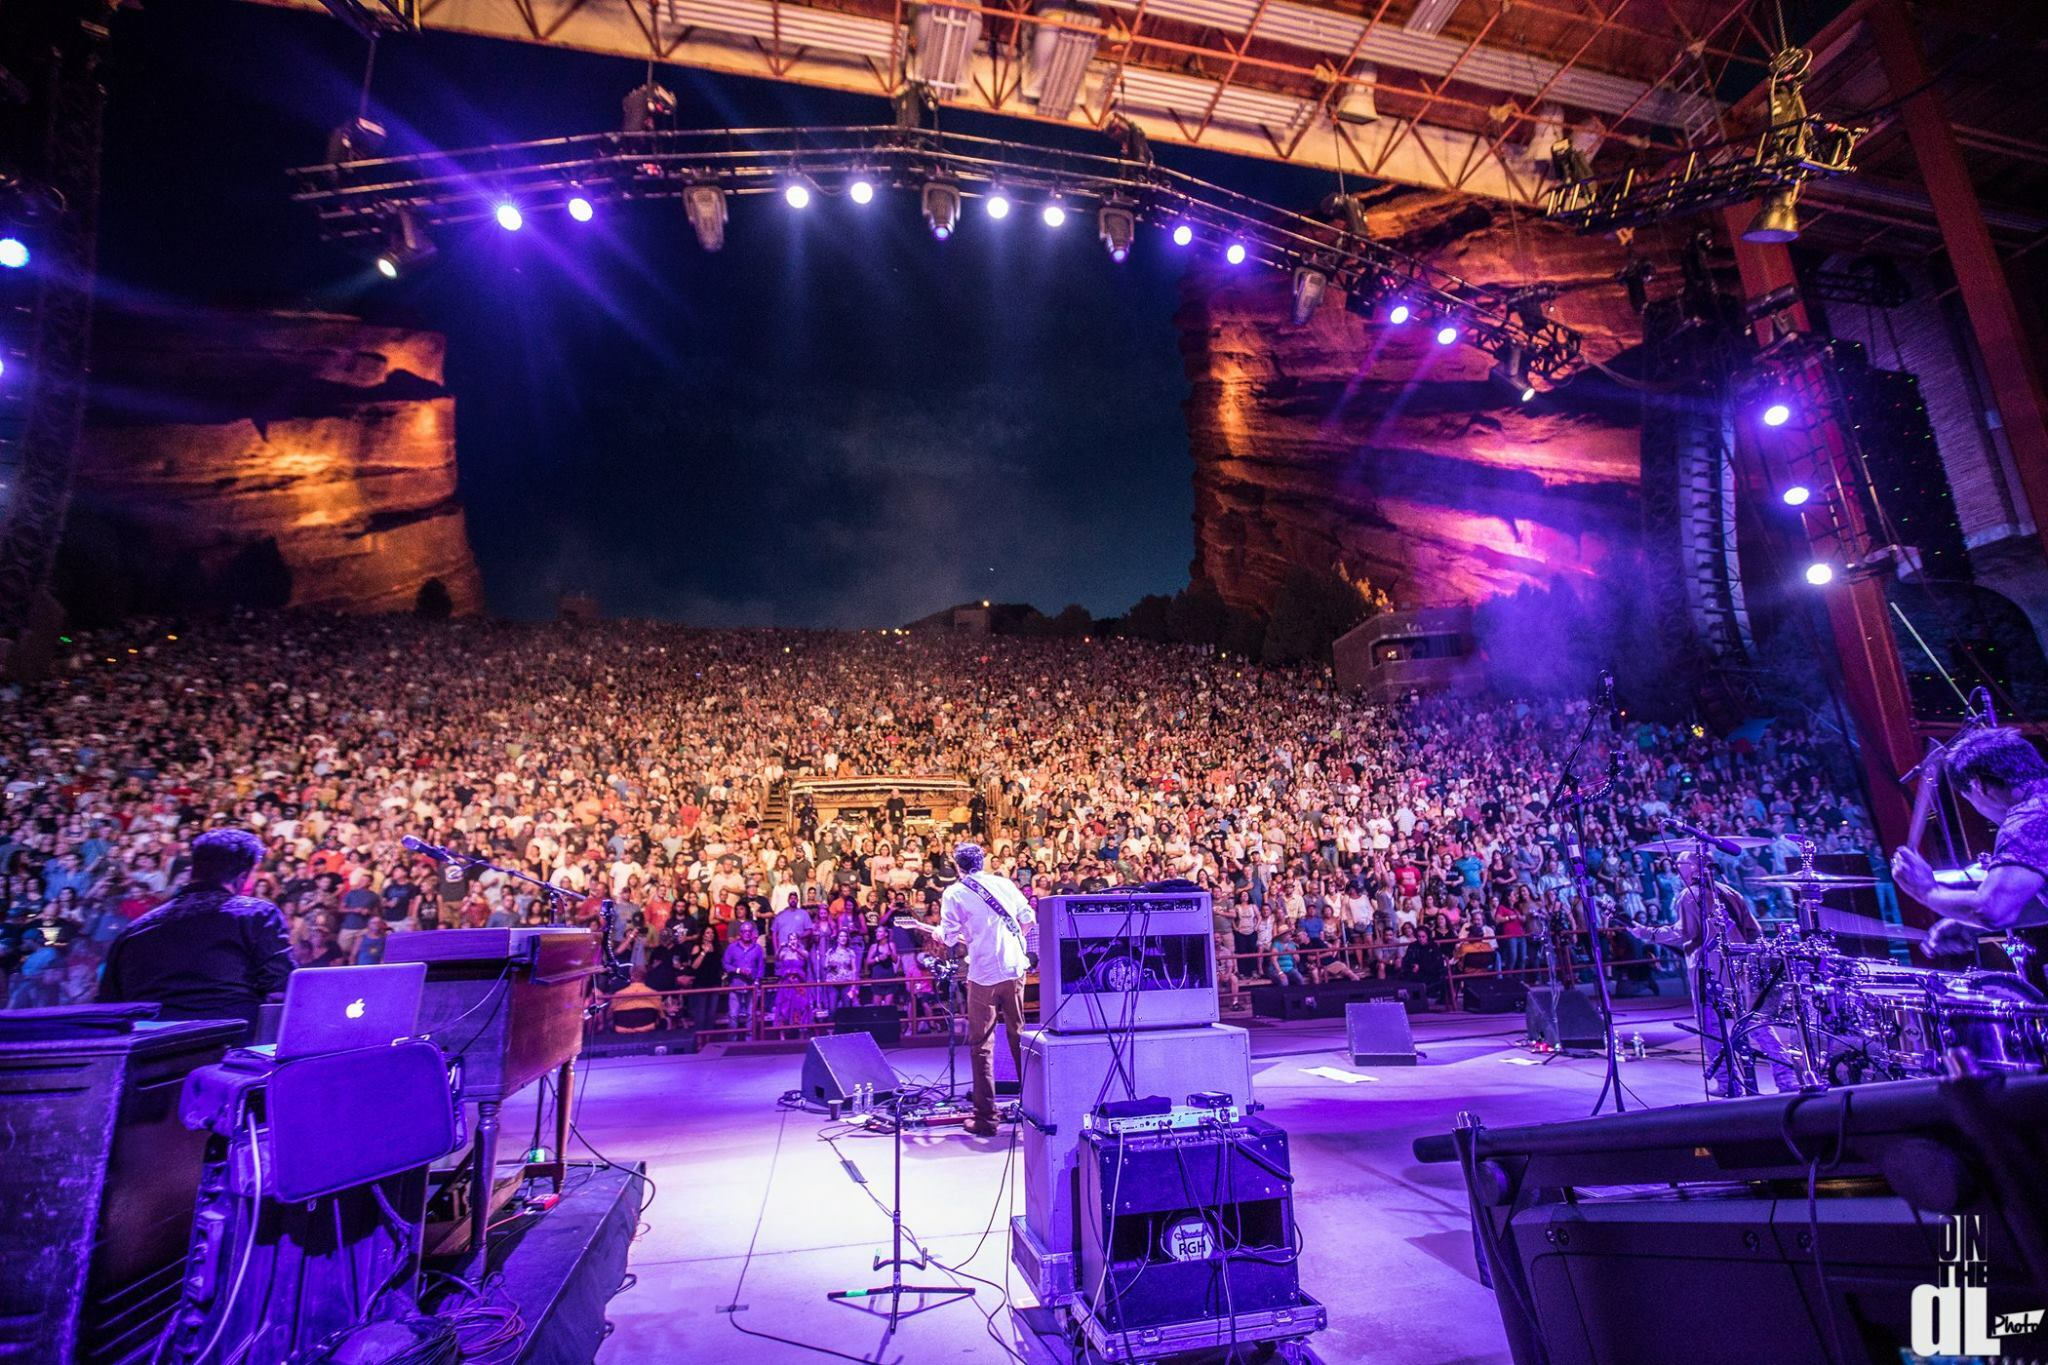 Discounted Hotel Rooms for BHTM Red Rocks Concertgoers!